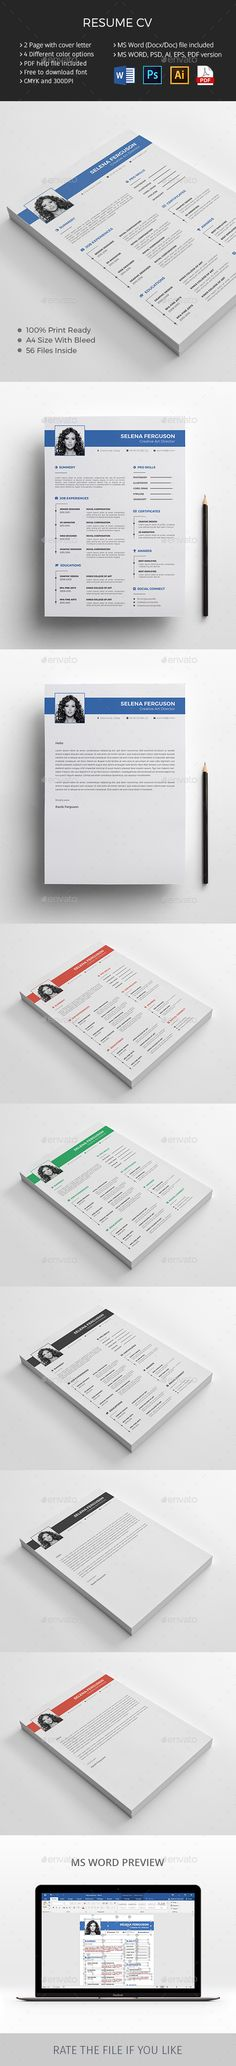 Word Cv Templates 2007%0A Resume CV